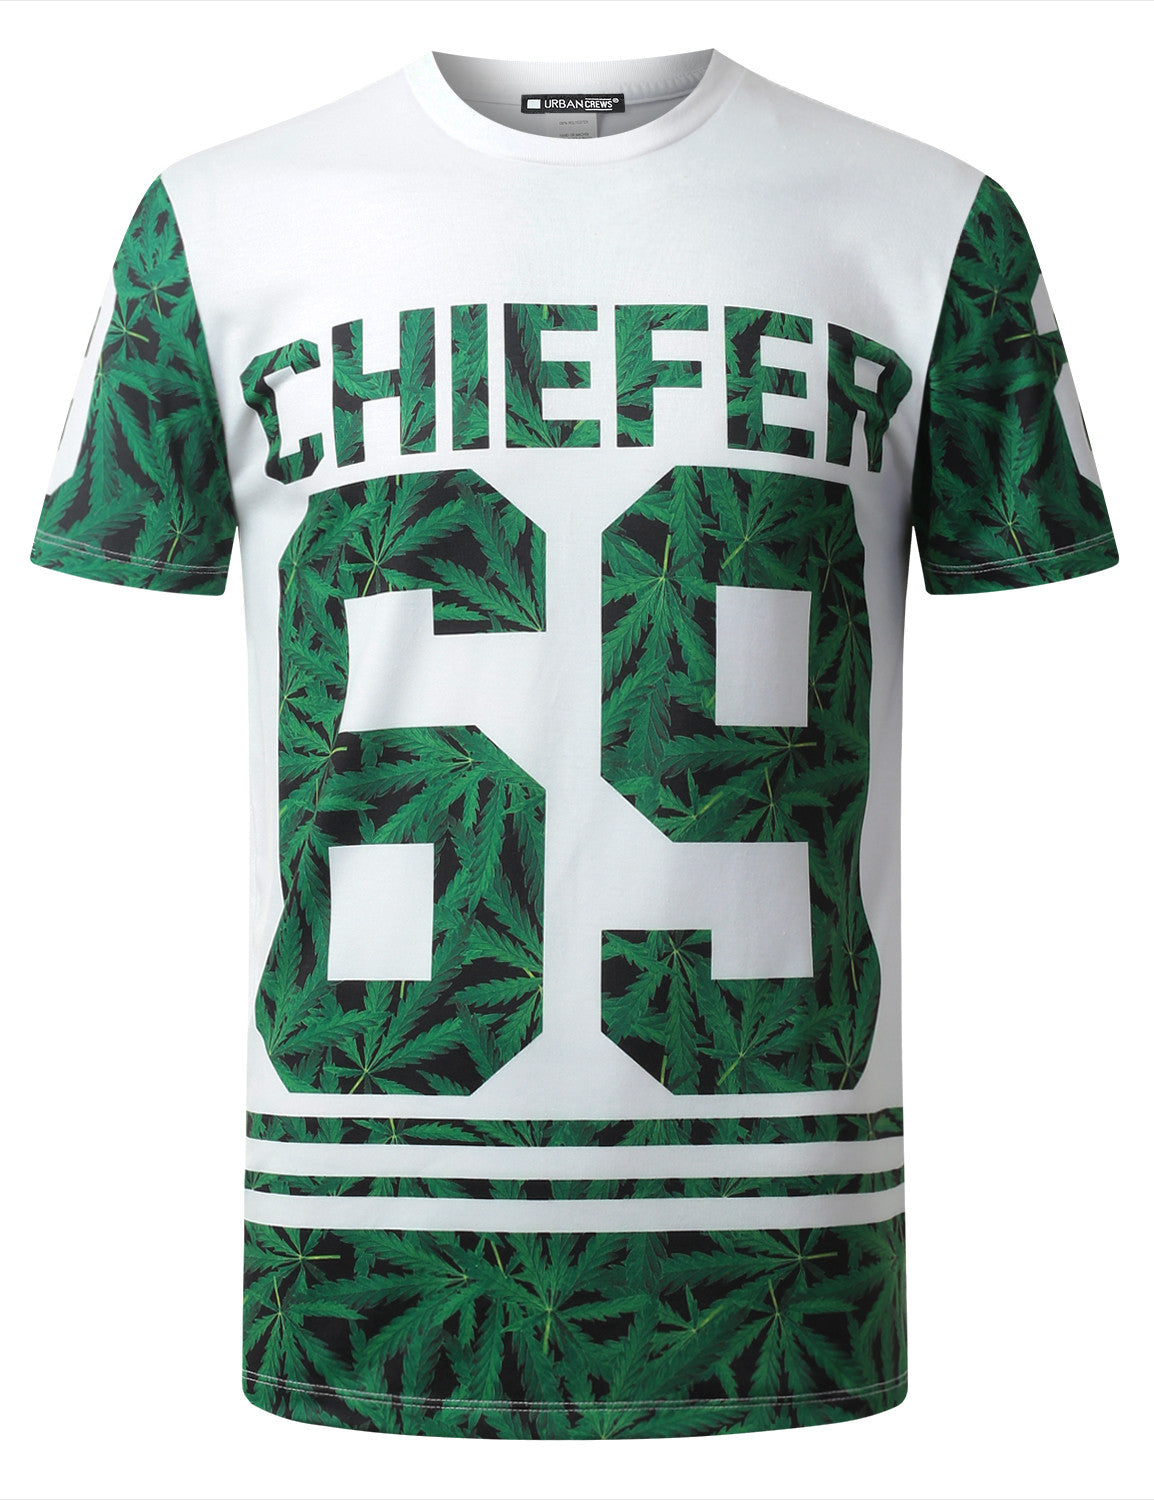 WHITE Chiefer 69 Leaf Crewneck Tshirt - URBANCREWS